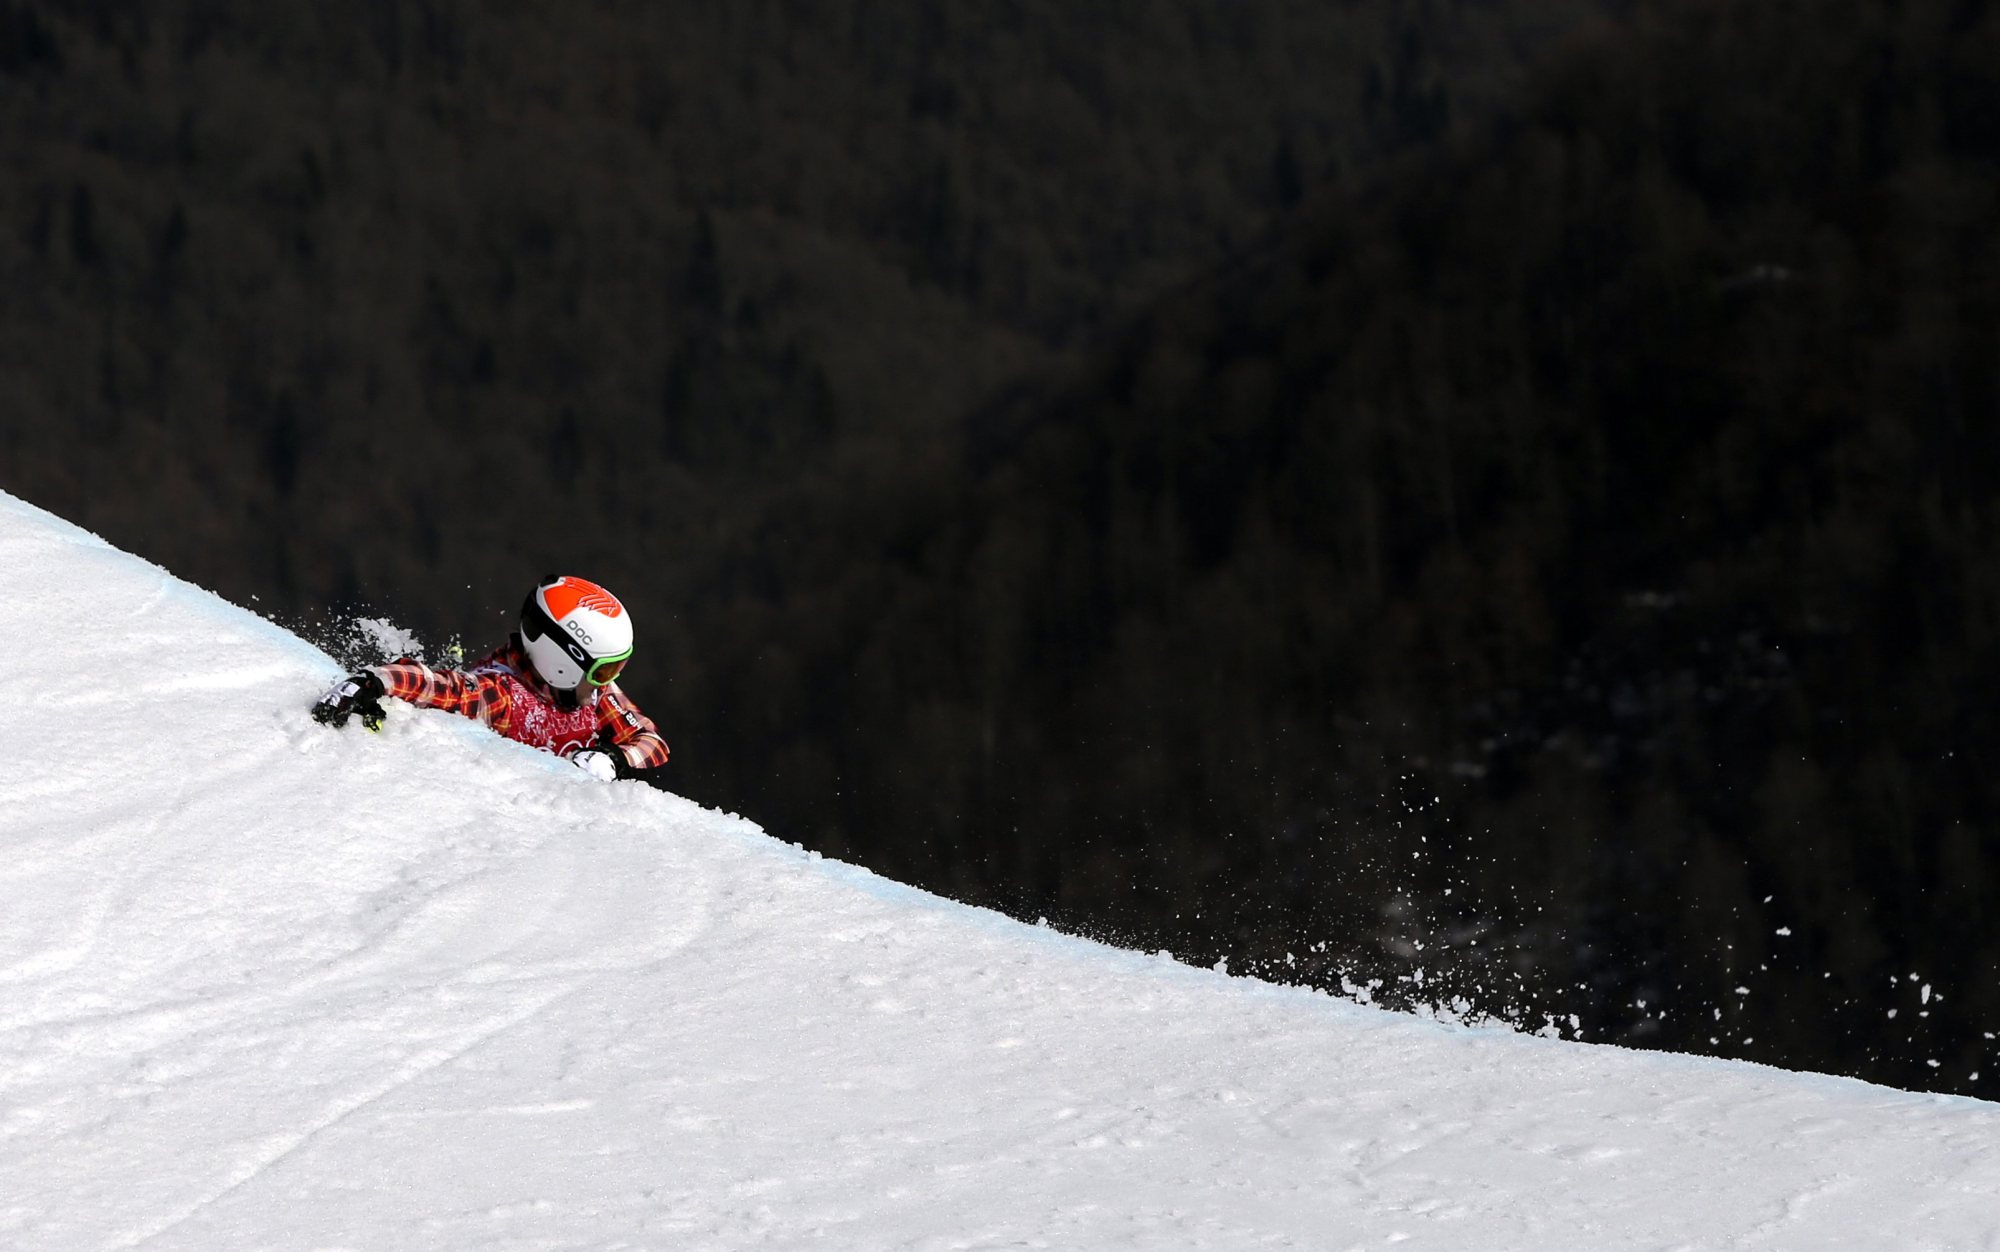 Canada's Brady Leman falls off a jump after crashing in the men's ski cross final at the Rosa Khutor Extreme Park.